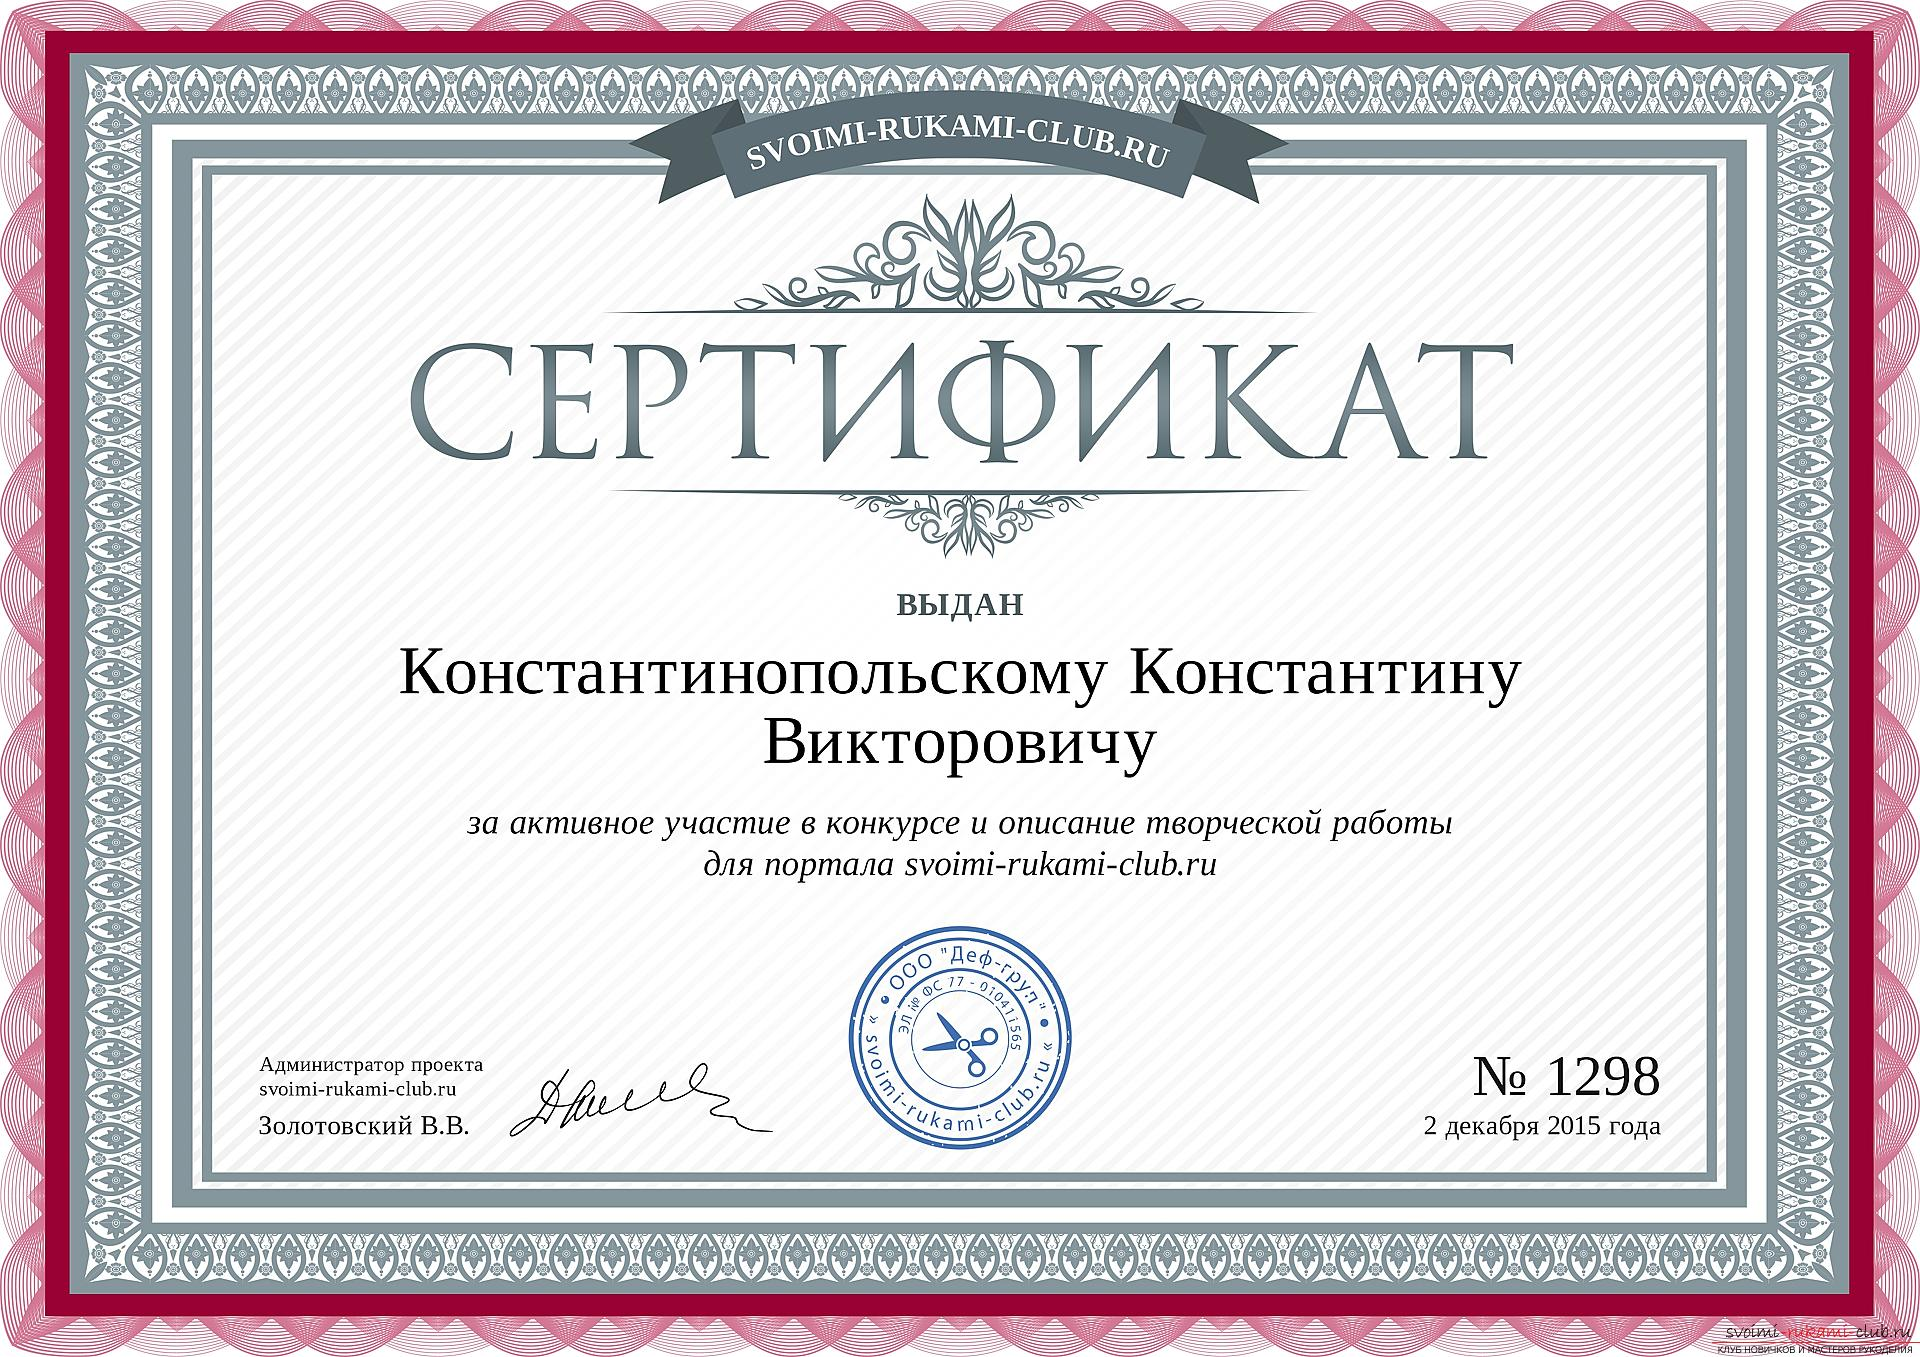 If you want to take part in free competitions and get a free certificate, read this article !. Photo №1